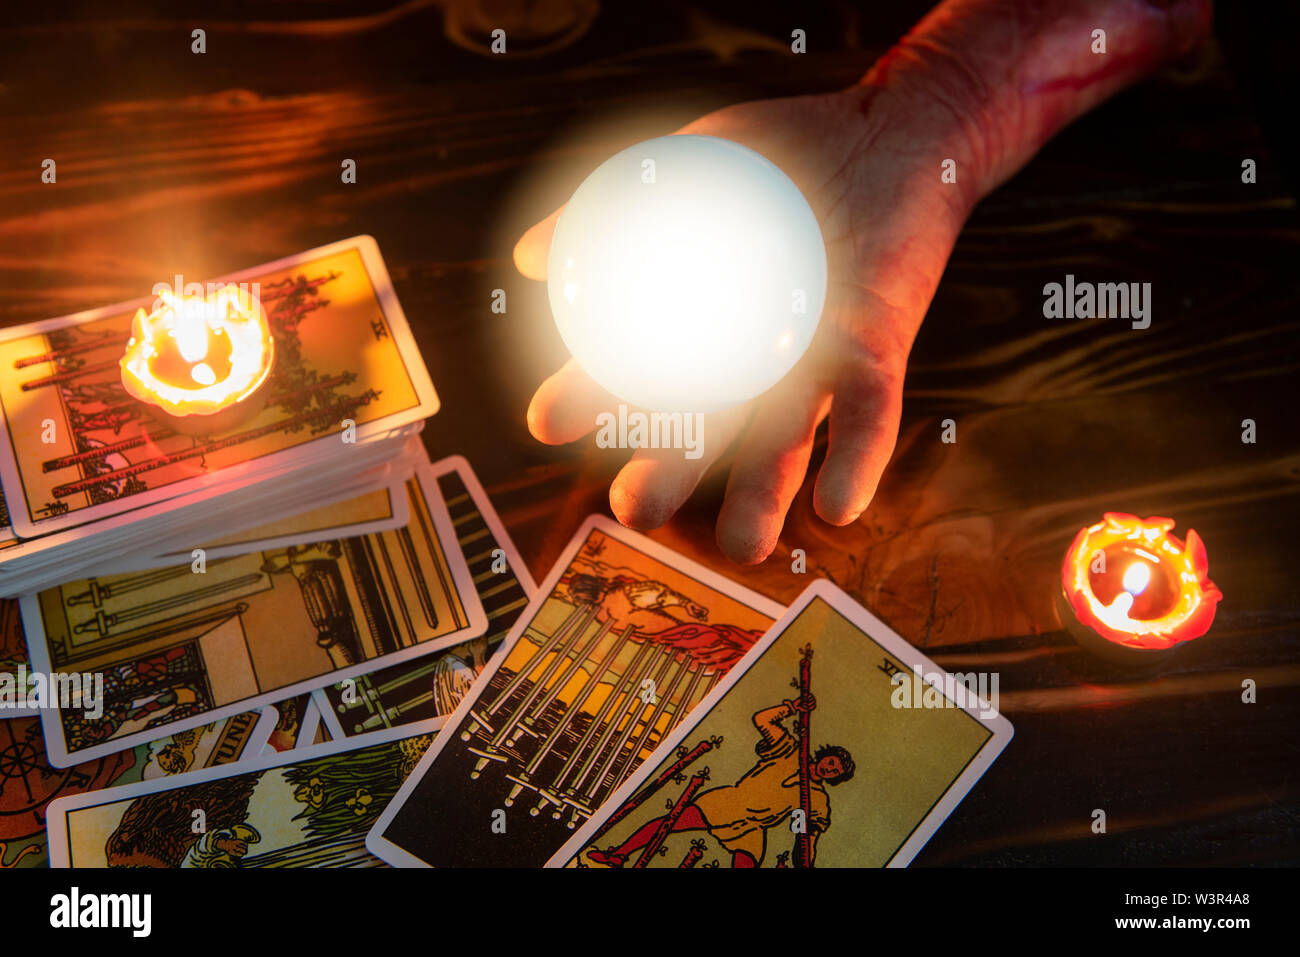 Tarot cards and crystal ball reading psychic by zombie hand